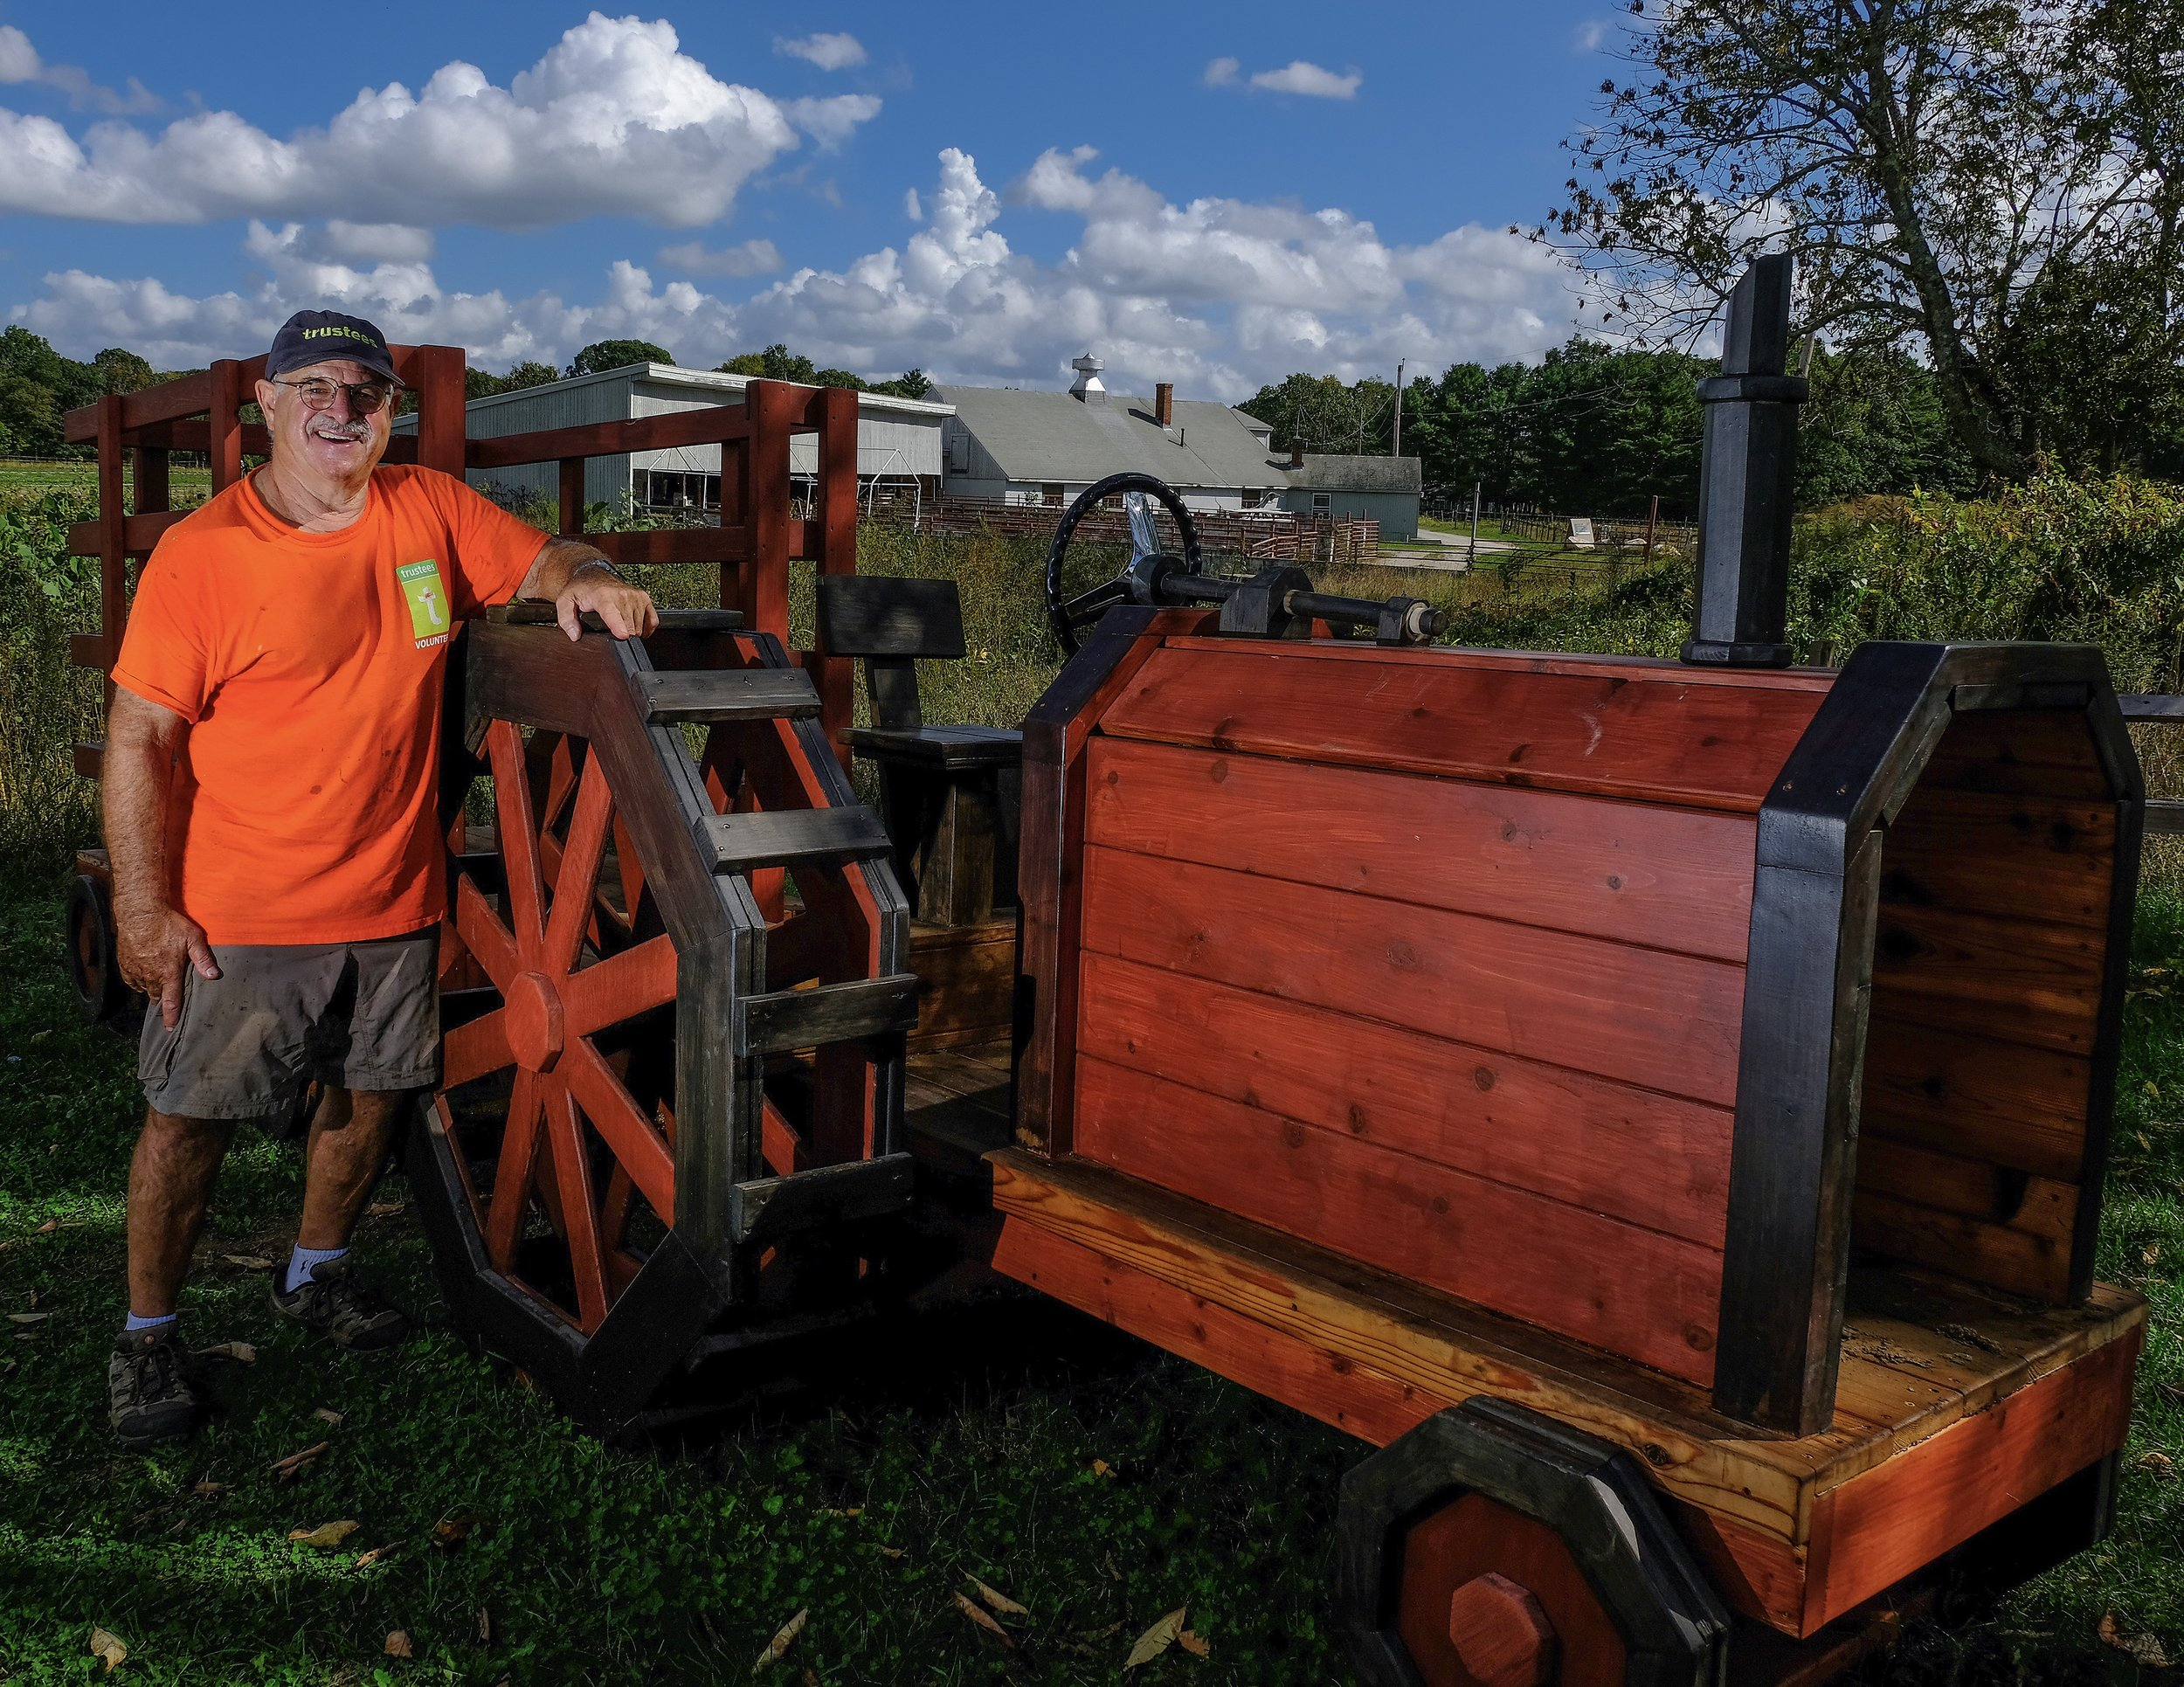 Alan Pasnick stands proudly next to one of his most recent creations, a tractor pull built for the kids play area at Powisset Farm in Dover.